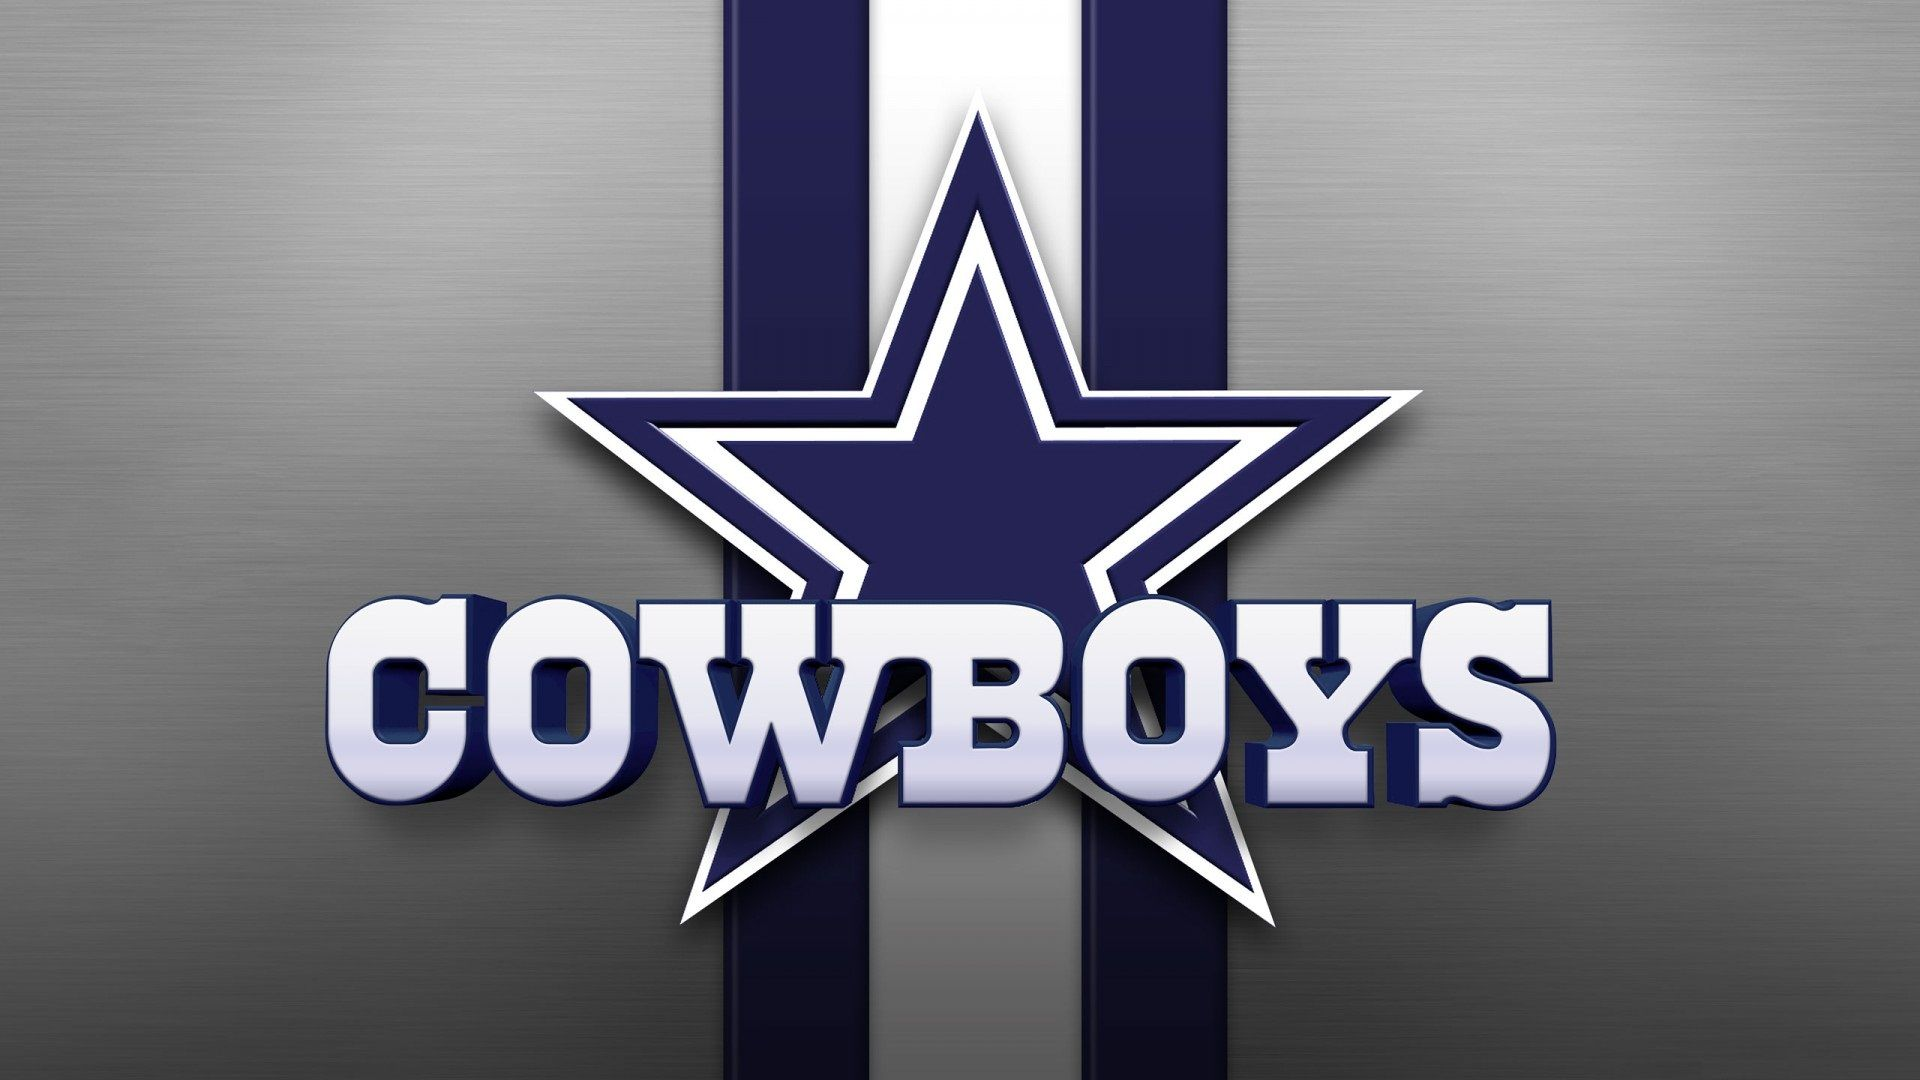 HD Cowboys Wallpaper - Best Wallpaper HD 220828a15